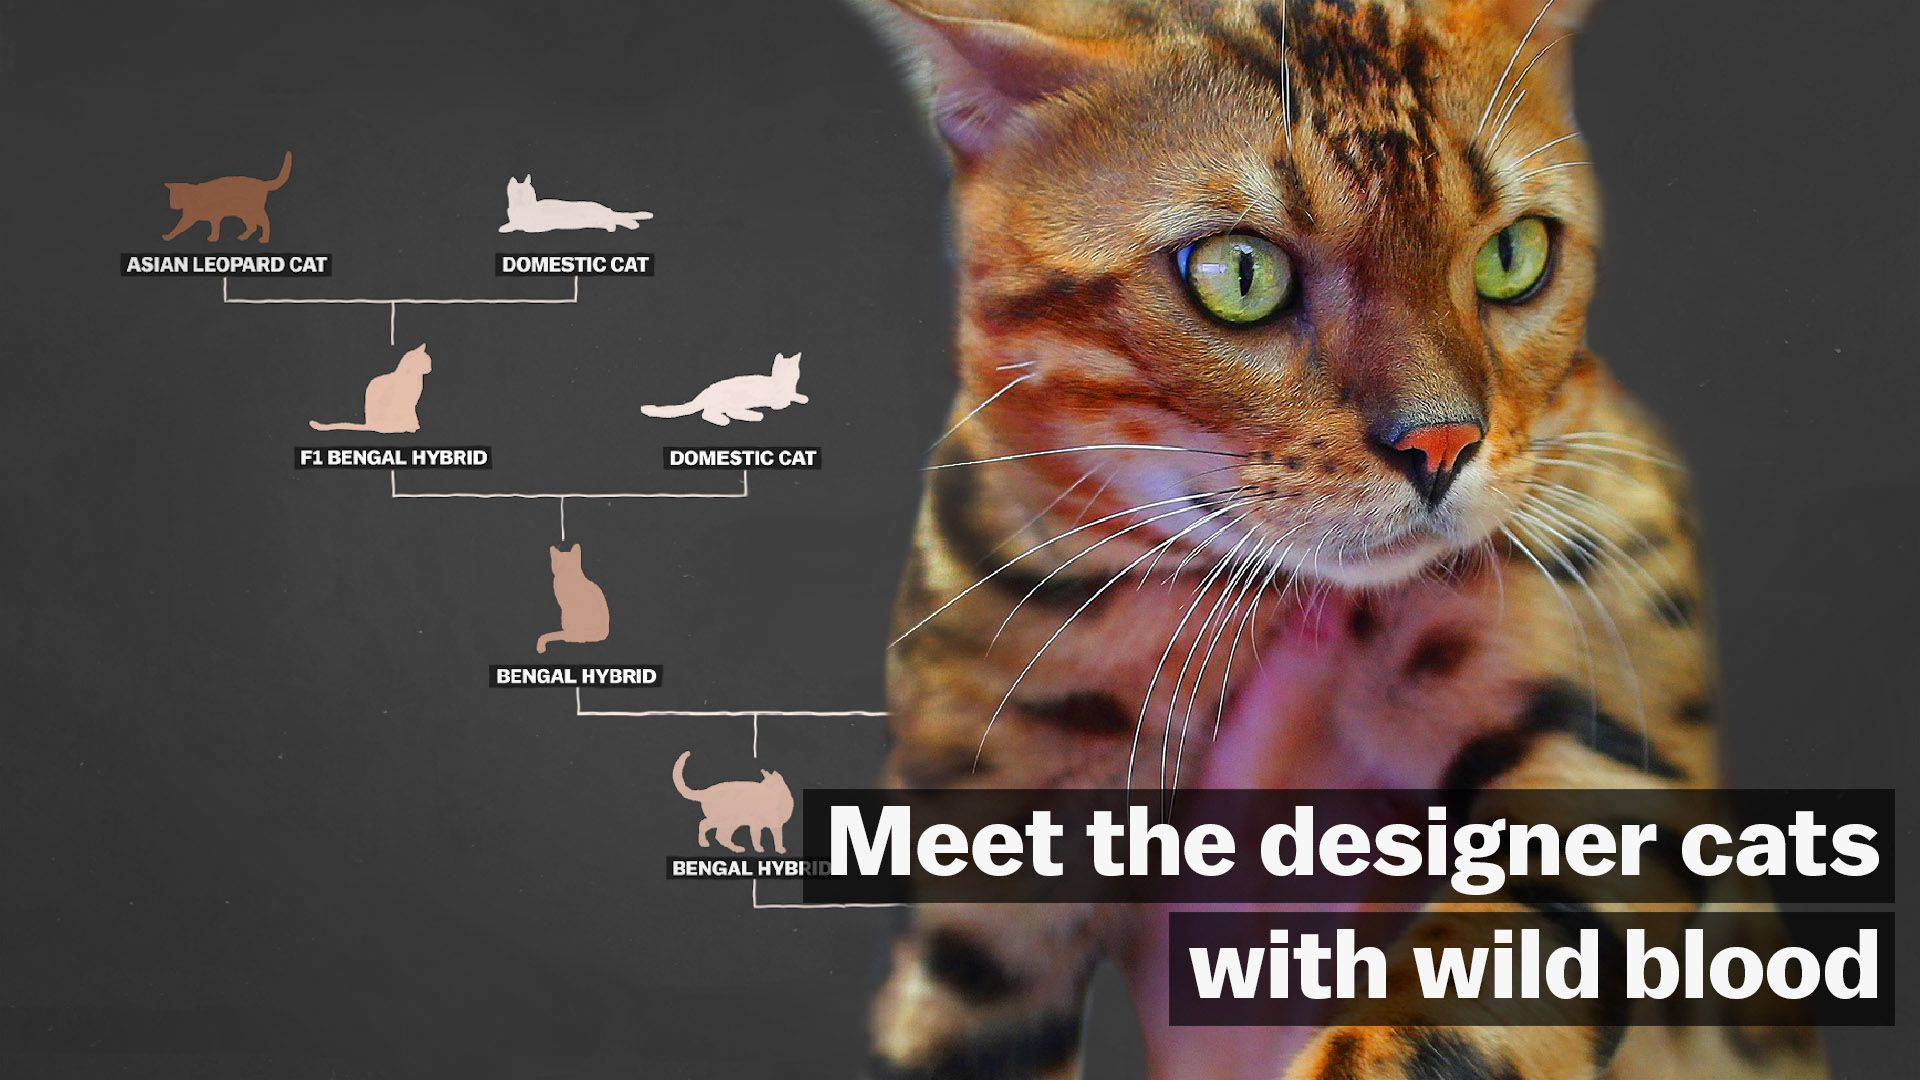 Meet the designer cats with wild blood - Vox